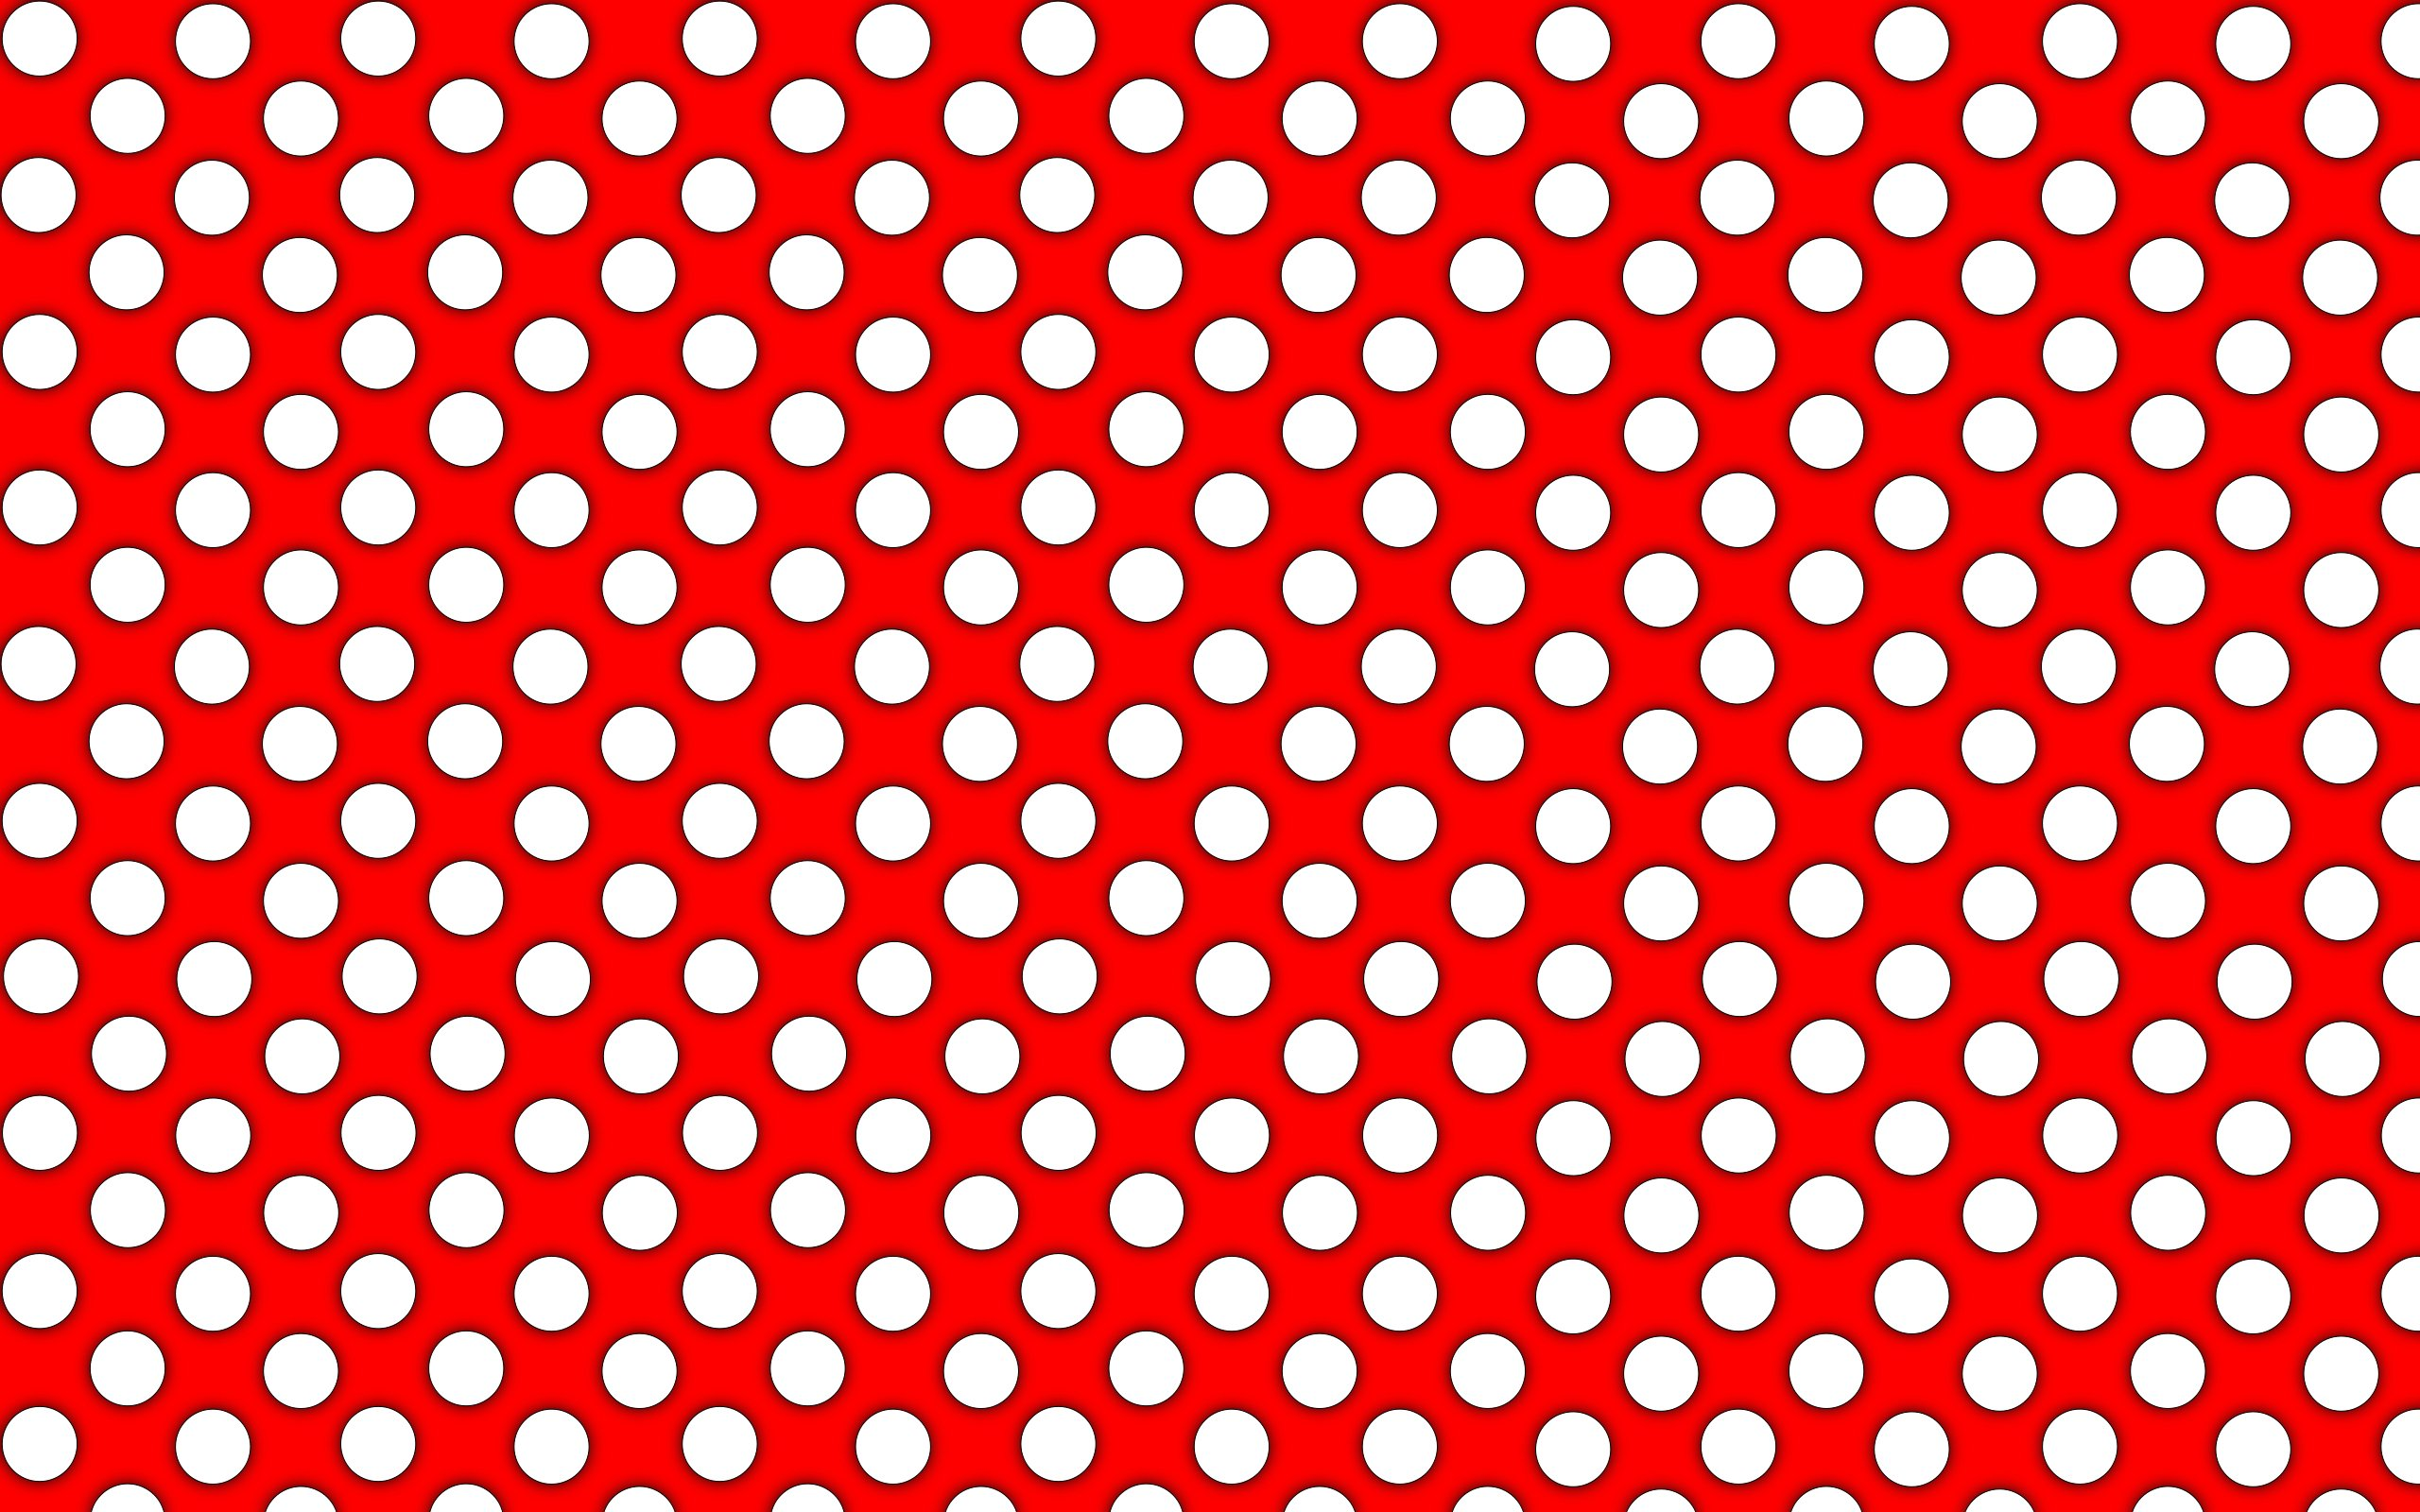 Pics photos pink polka dot s wallpaper - Polka Dot Wallpaper